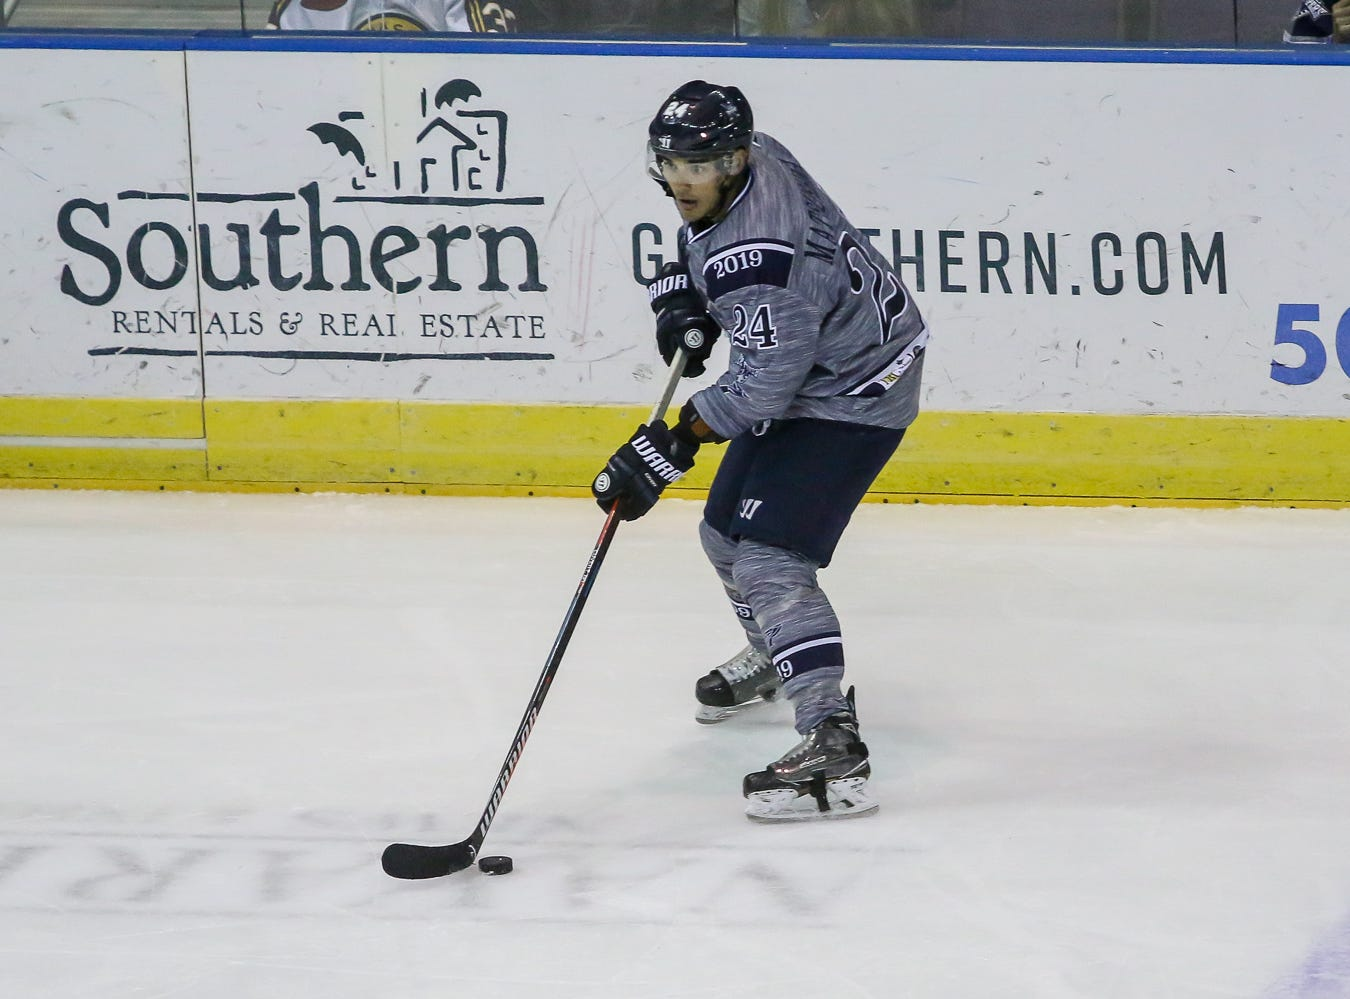 Pensacola's Eddie Matsushima (24) watches as his teammates set up a play against Macon during the last home game of the regular season at the Pensacola Bay Center on Saturday, March 23, 2019. With over 4,300 people in attendance for Pensacola's 3-1 victory, the Ice Flyers mark six straight years of over 100,000 people at their home games each season. The team has won their last five games in a row and will finish out their last five games on the road before entering the playoffs in a couple of weeks.